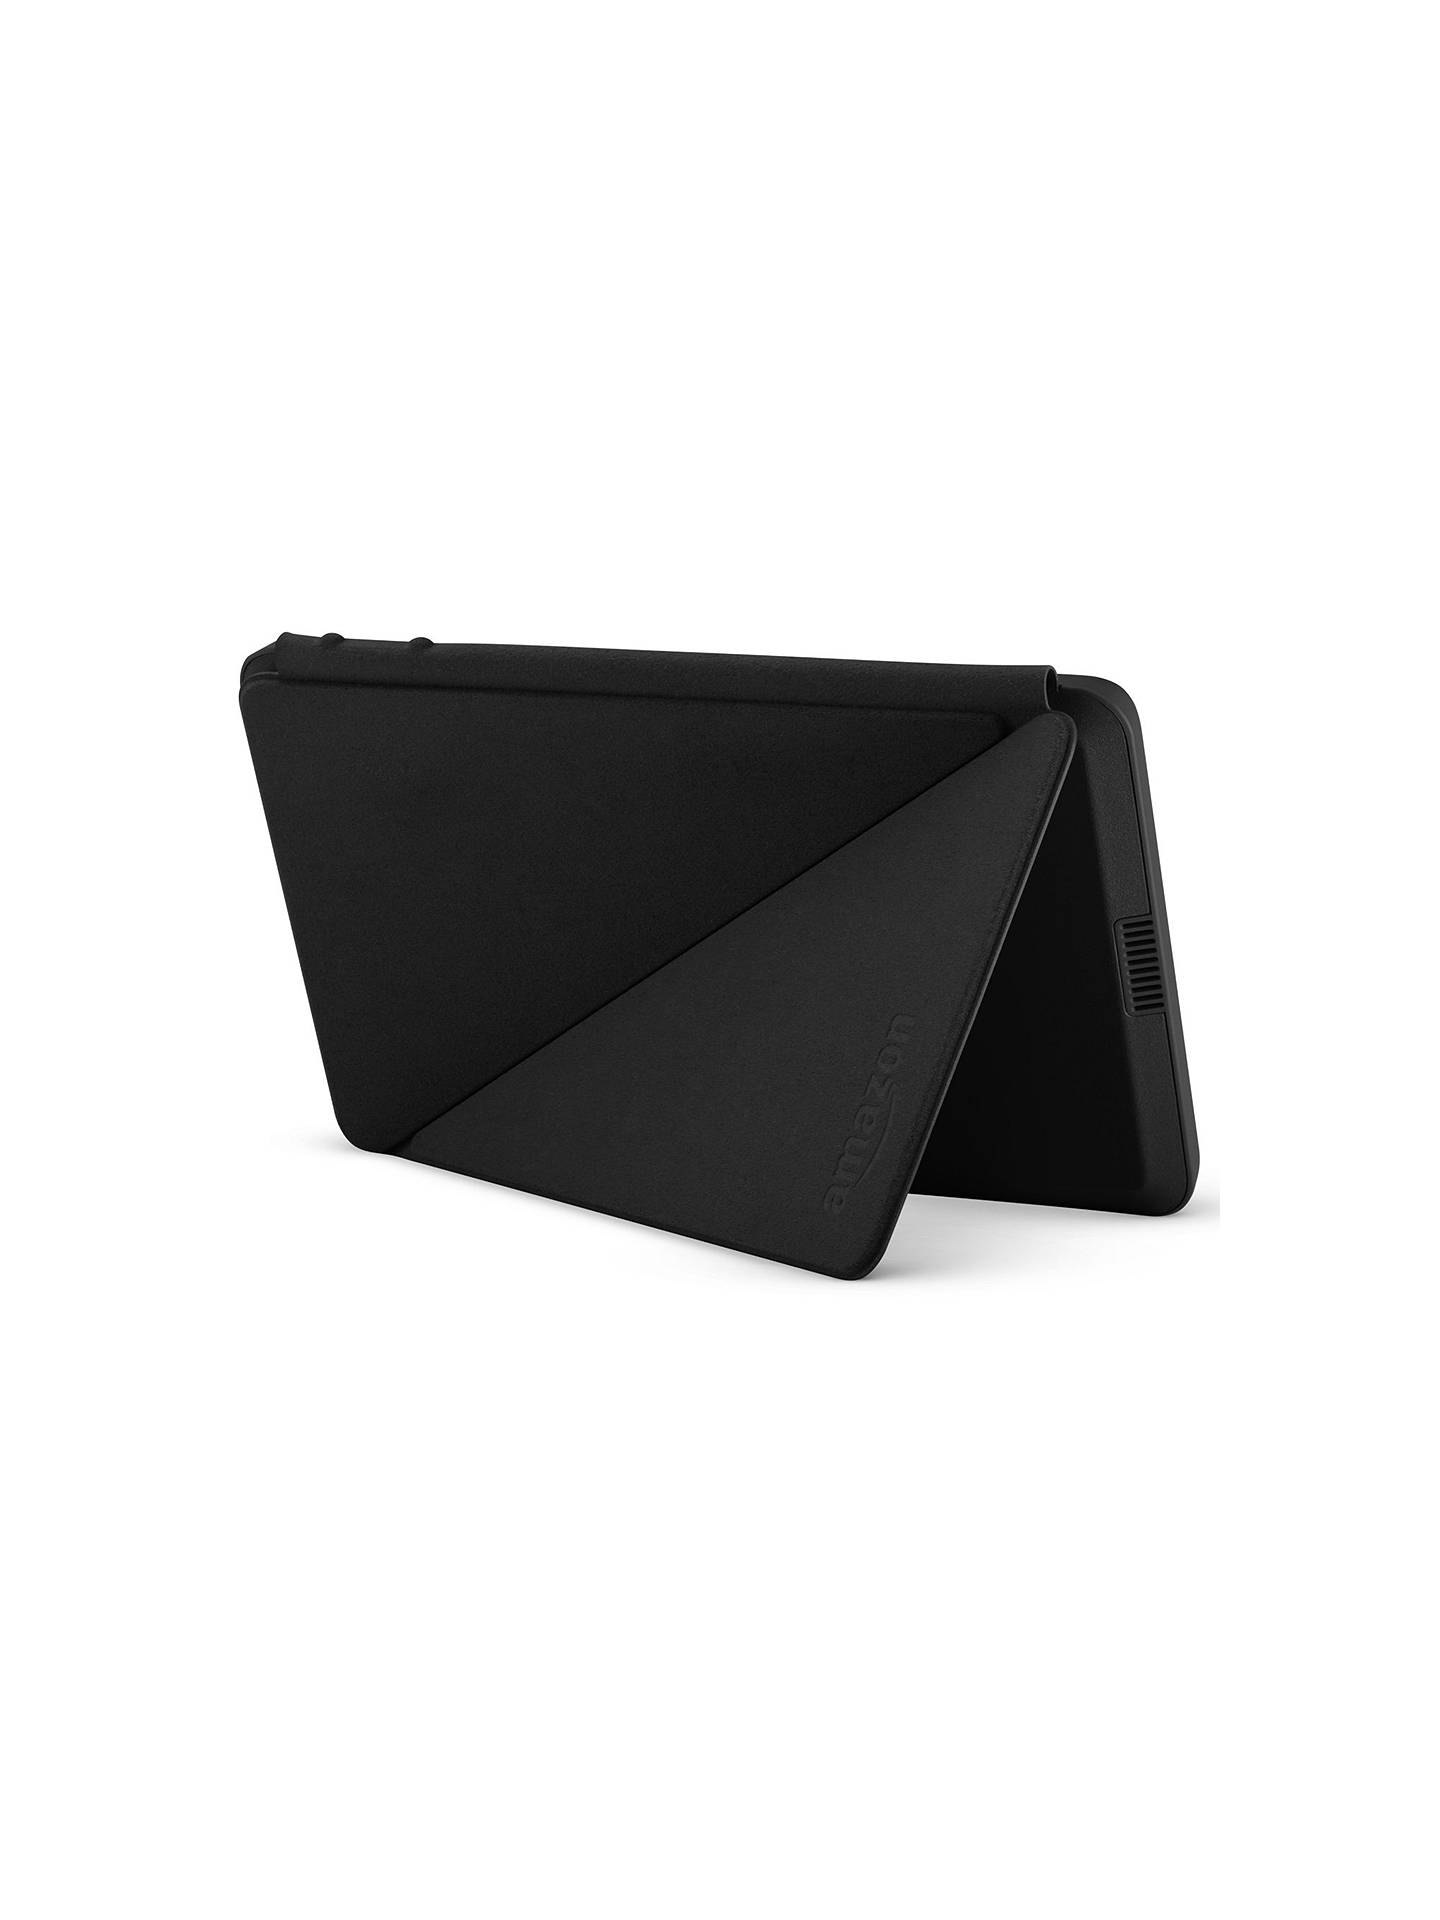 4th Generation Black Standing Protective Case for Fire HD 7